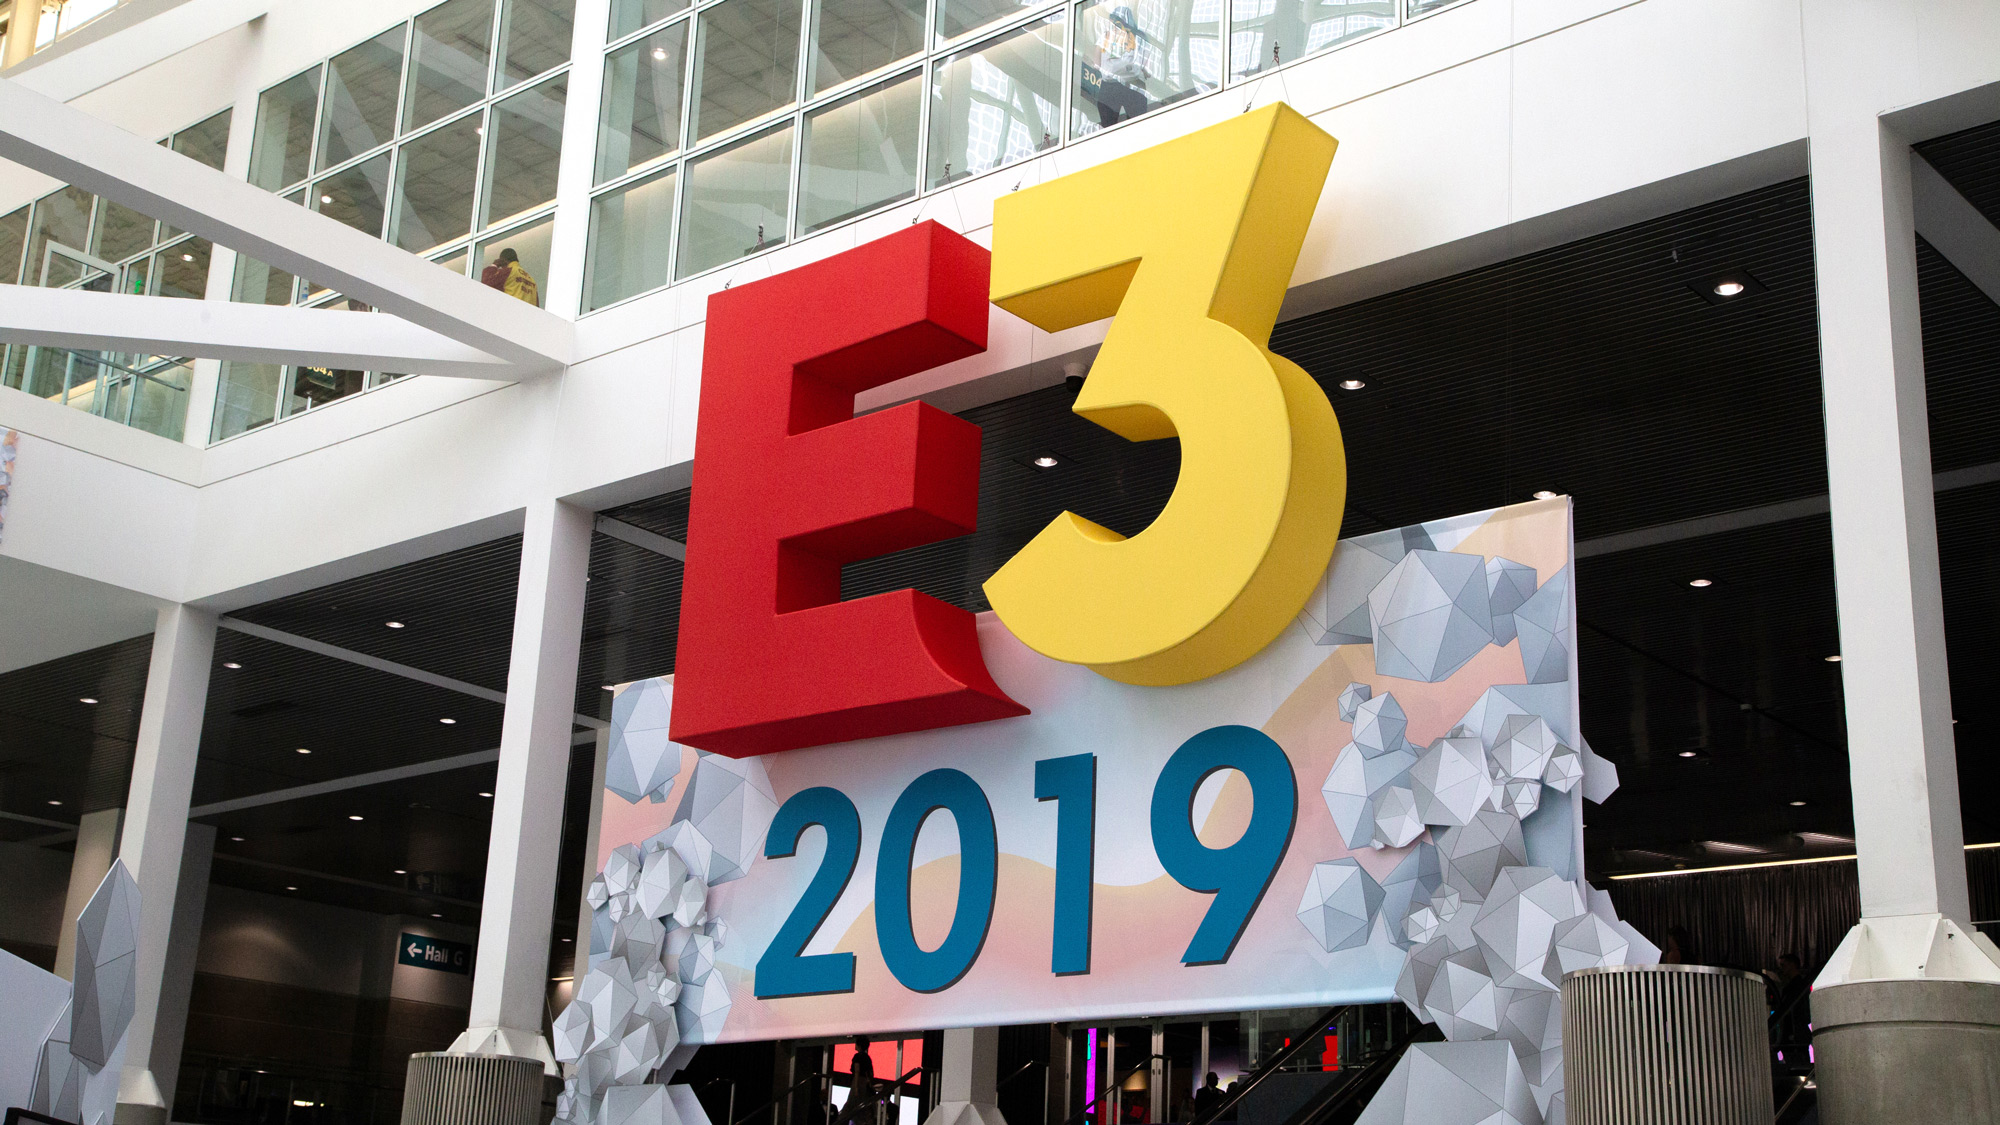 A sign from in front of E3 2019.